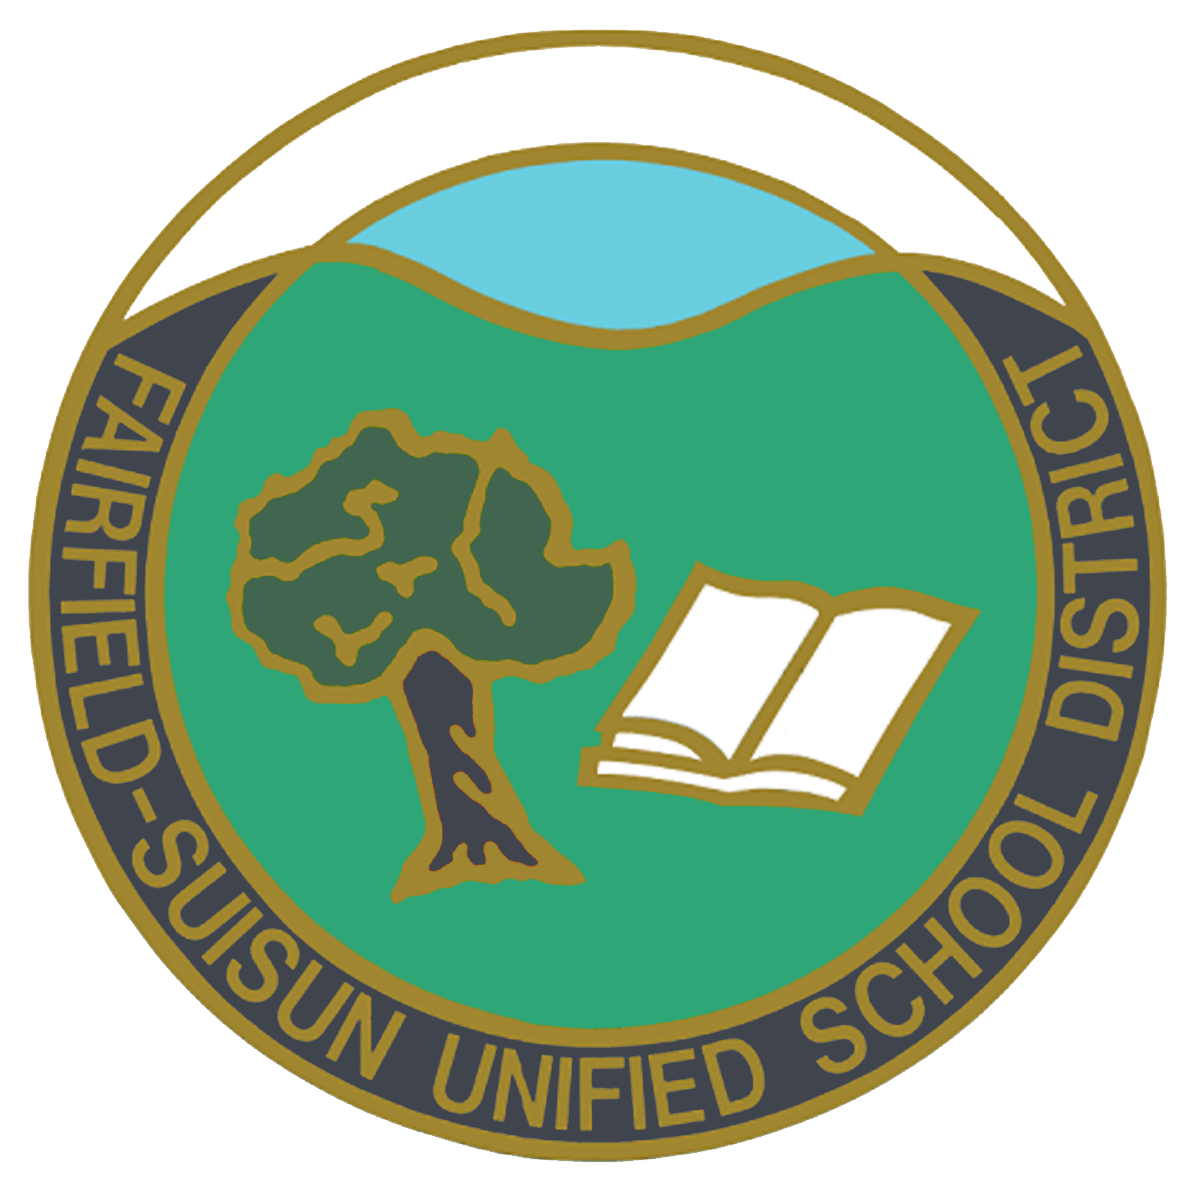 Department of Curriculum, Instruction, and Assessment